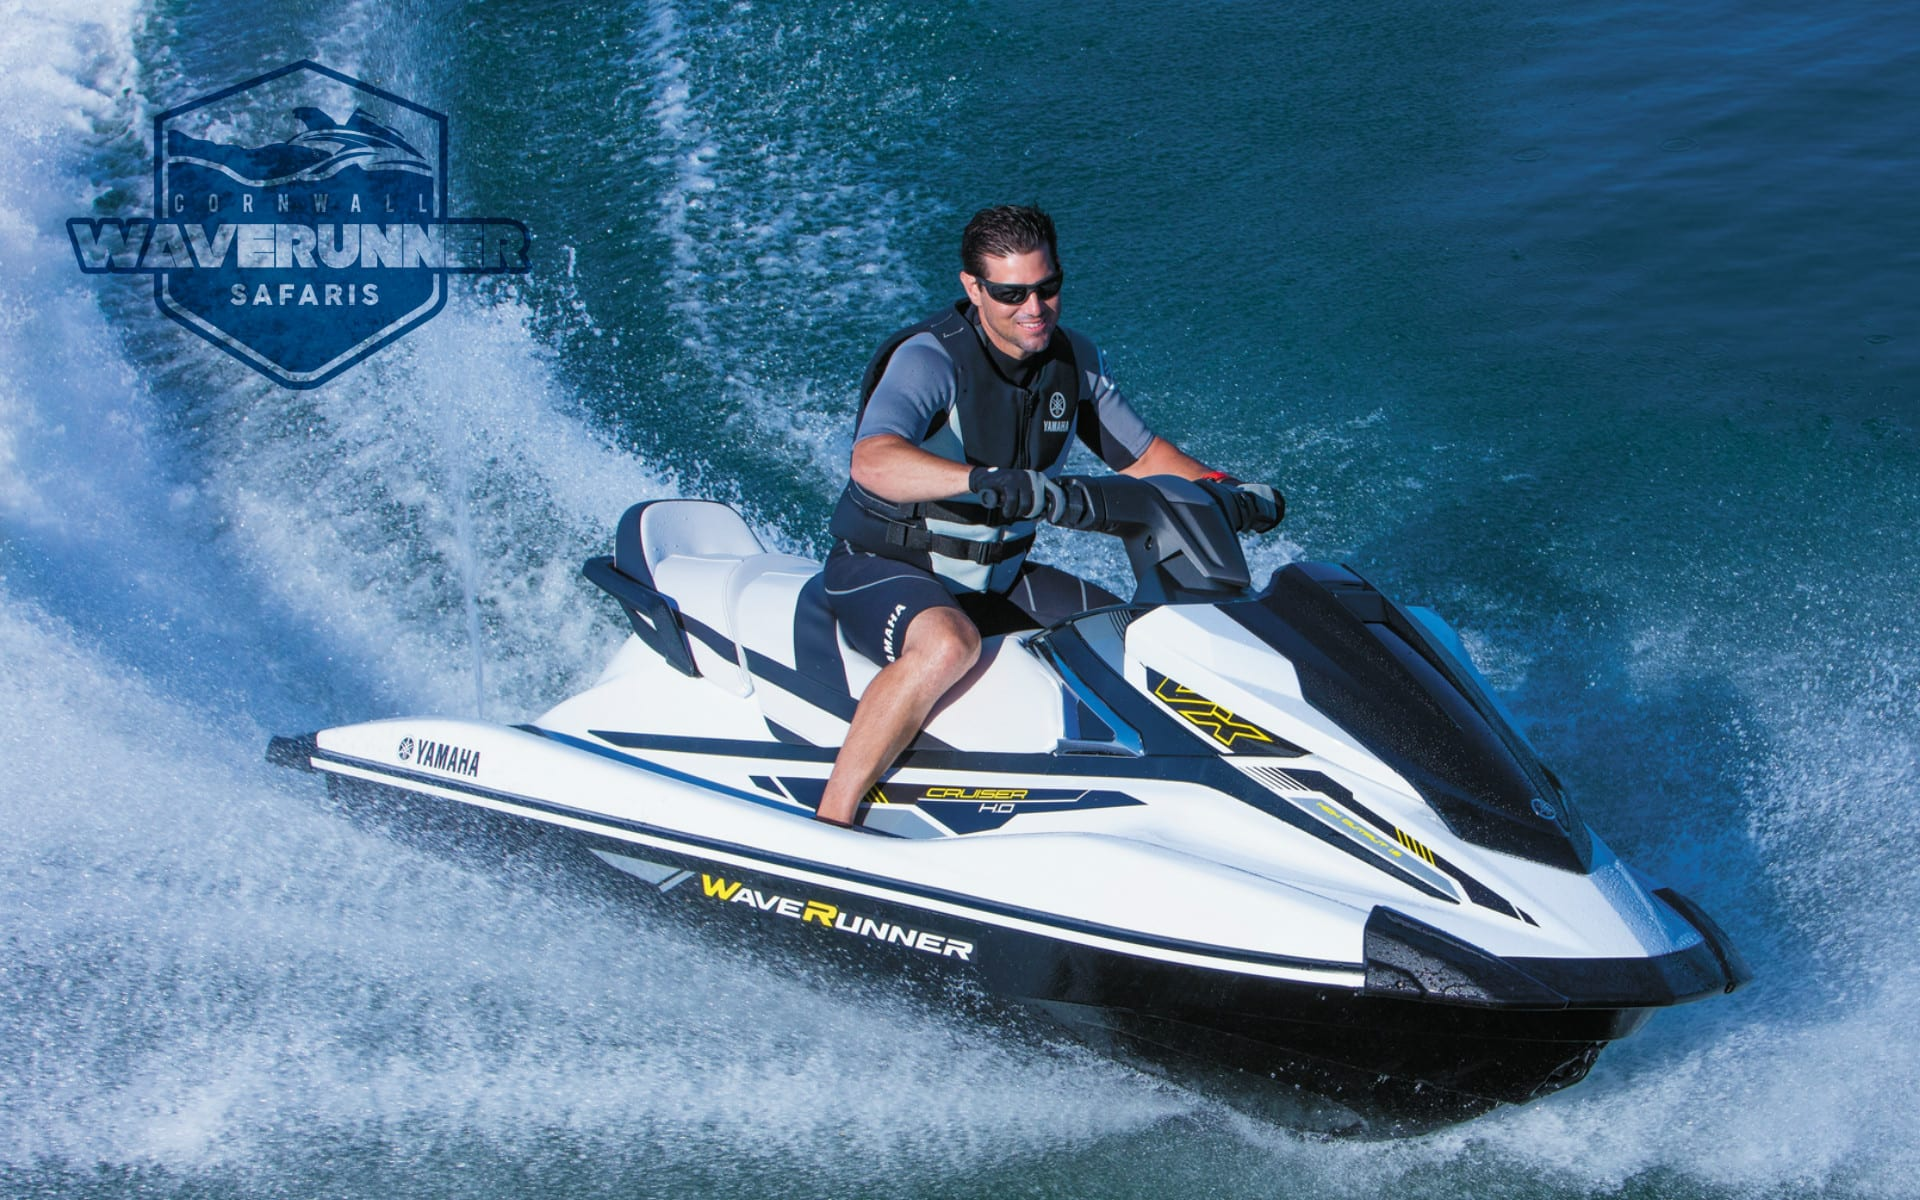 New Yamaha Jet Boats For Sale